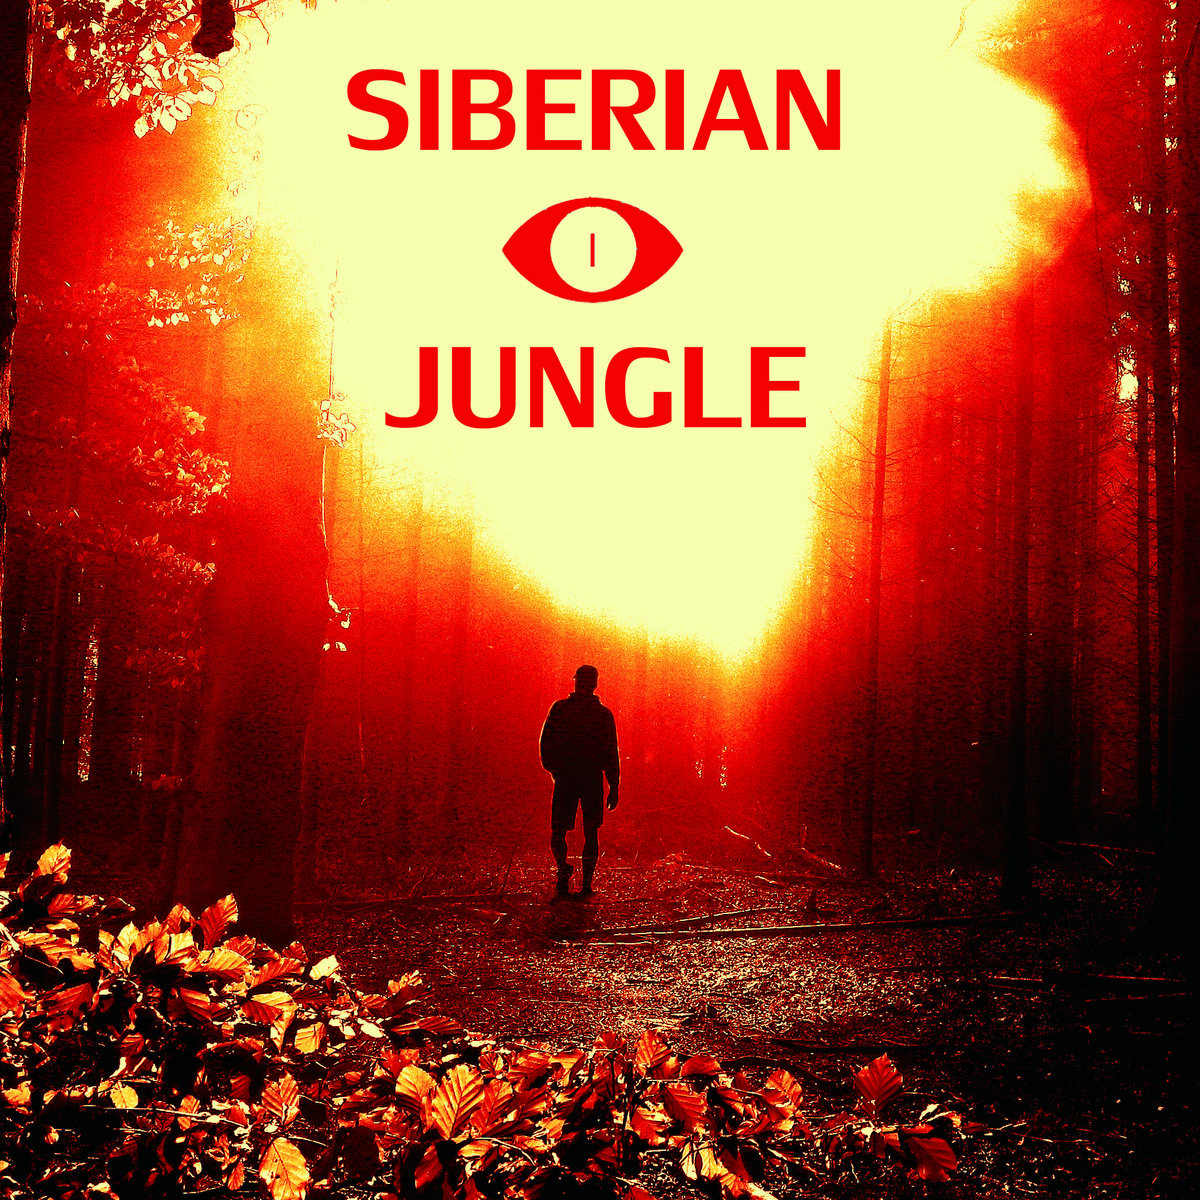 Chooga - 3170 Lakes @ 'Siberian Jungle - Volume 1' album (atmospheric drum'n'bass, electronic)